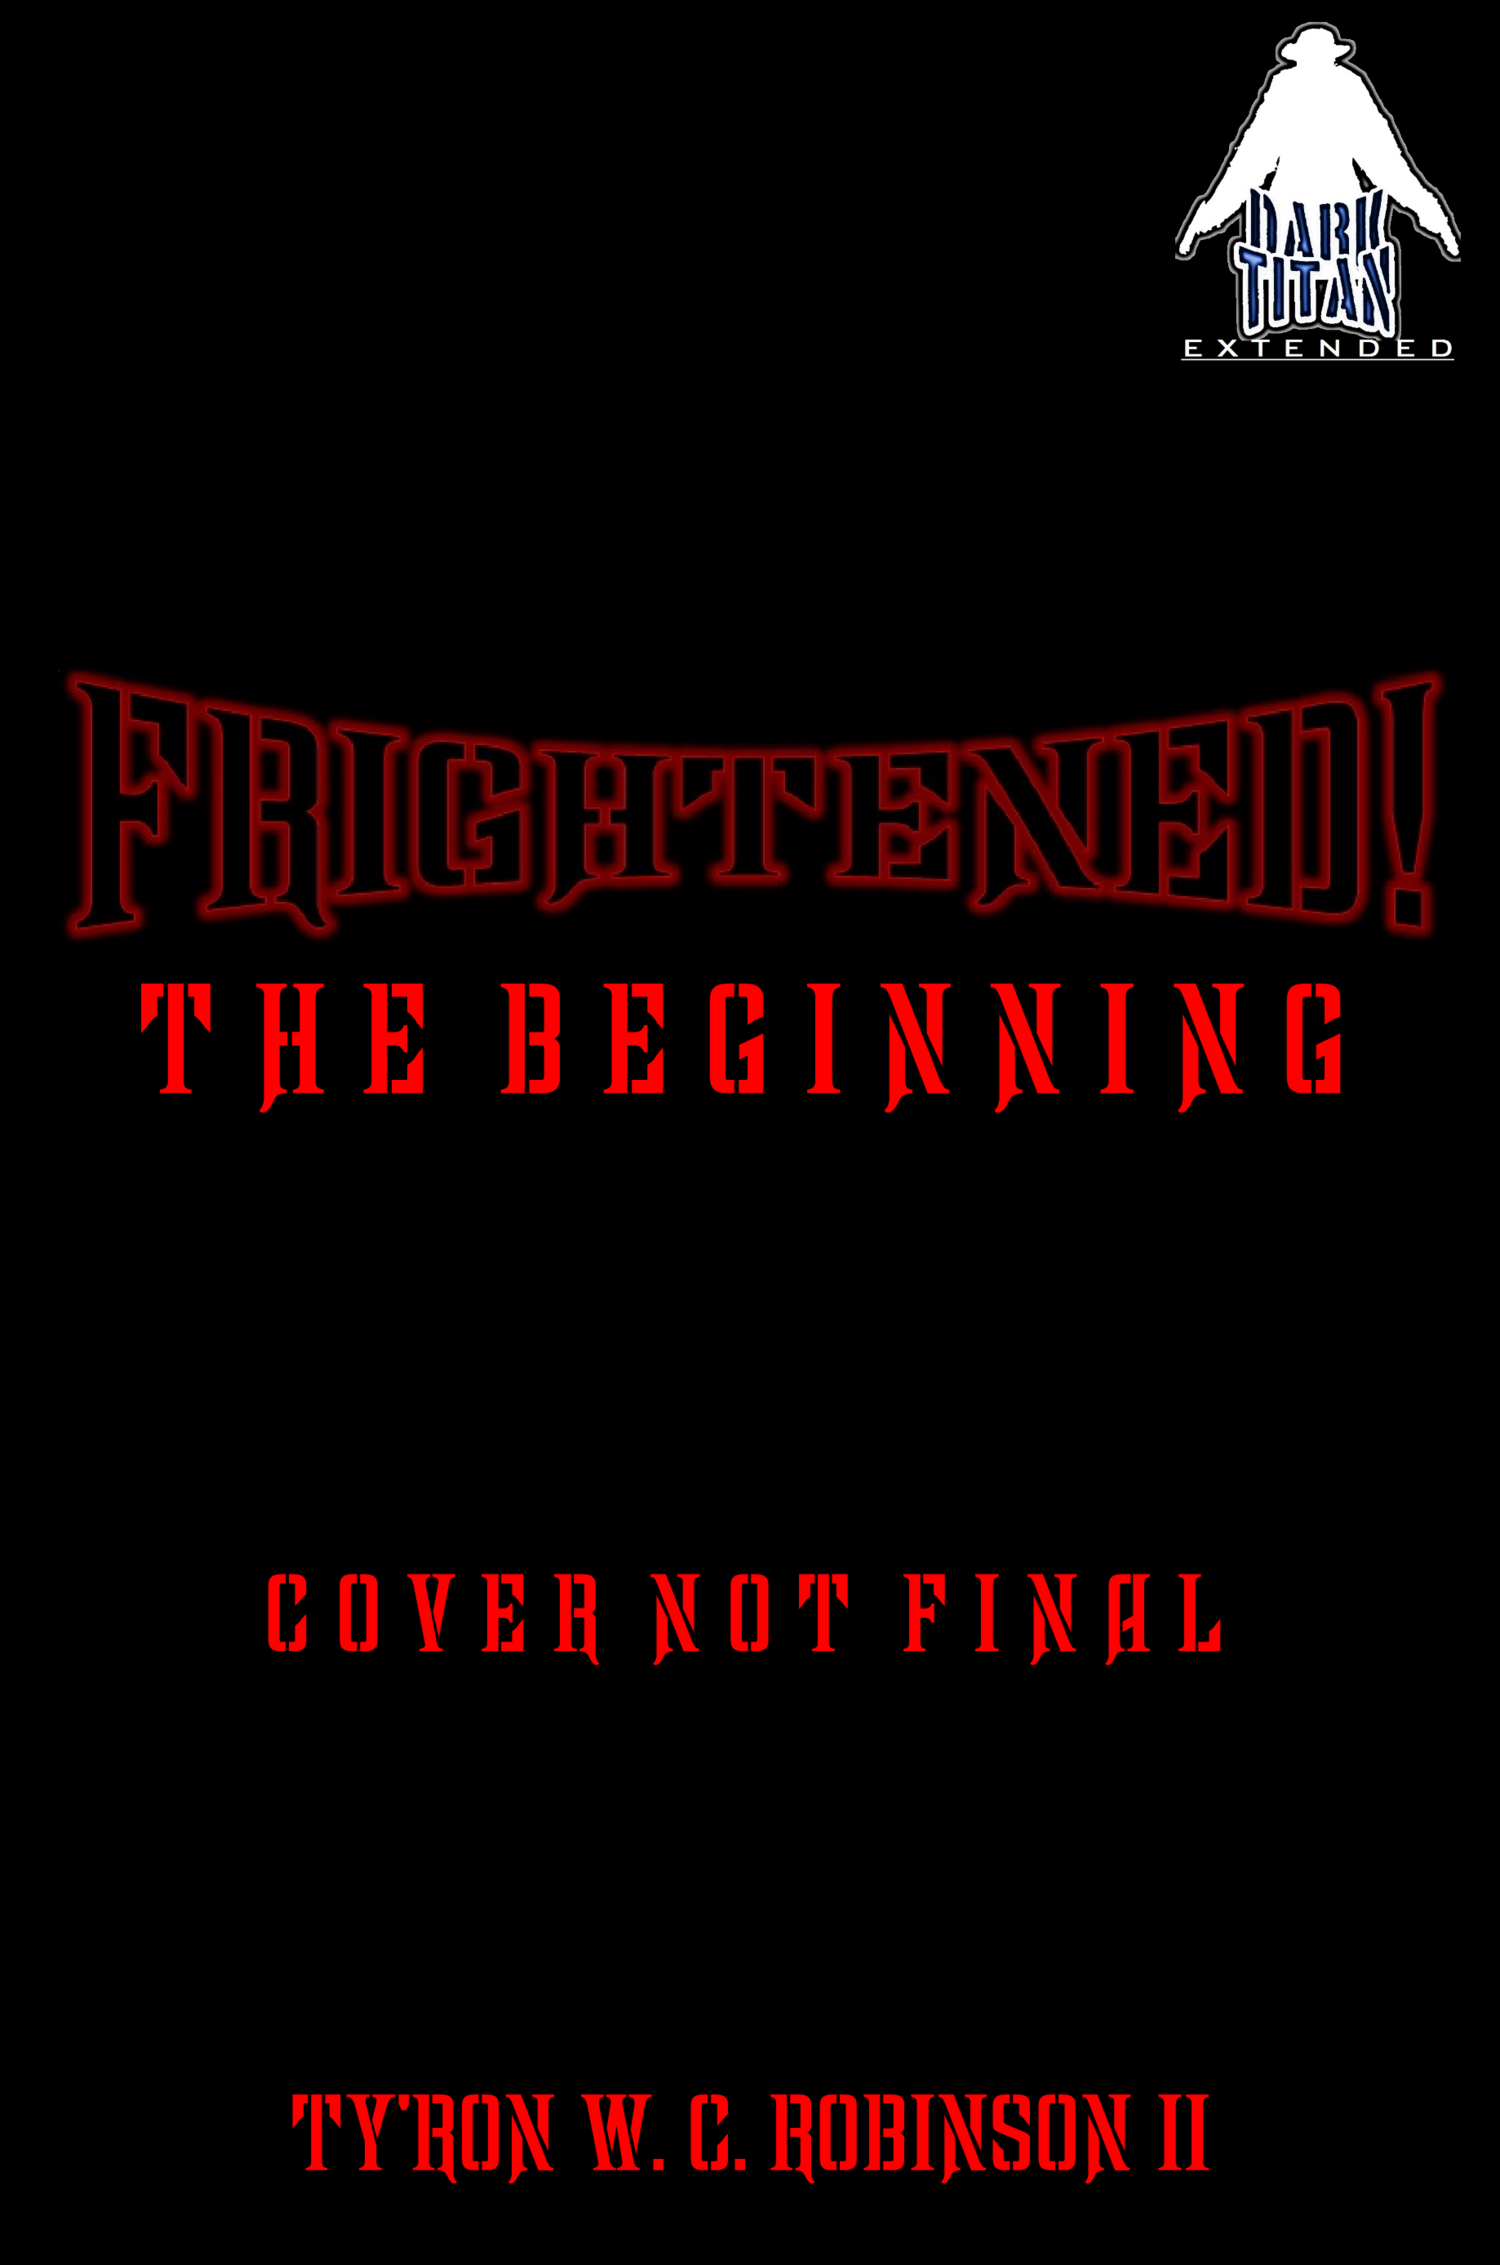 Frightened! The Beginning Placeholder Cover - Extended.png